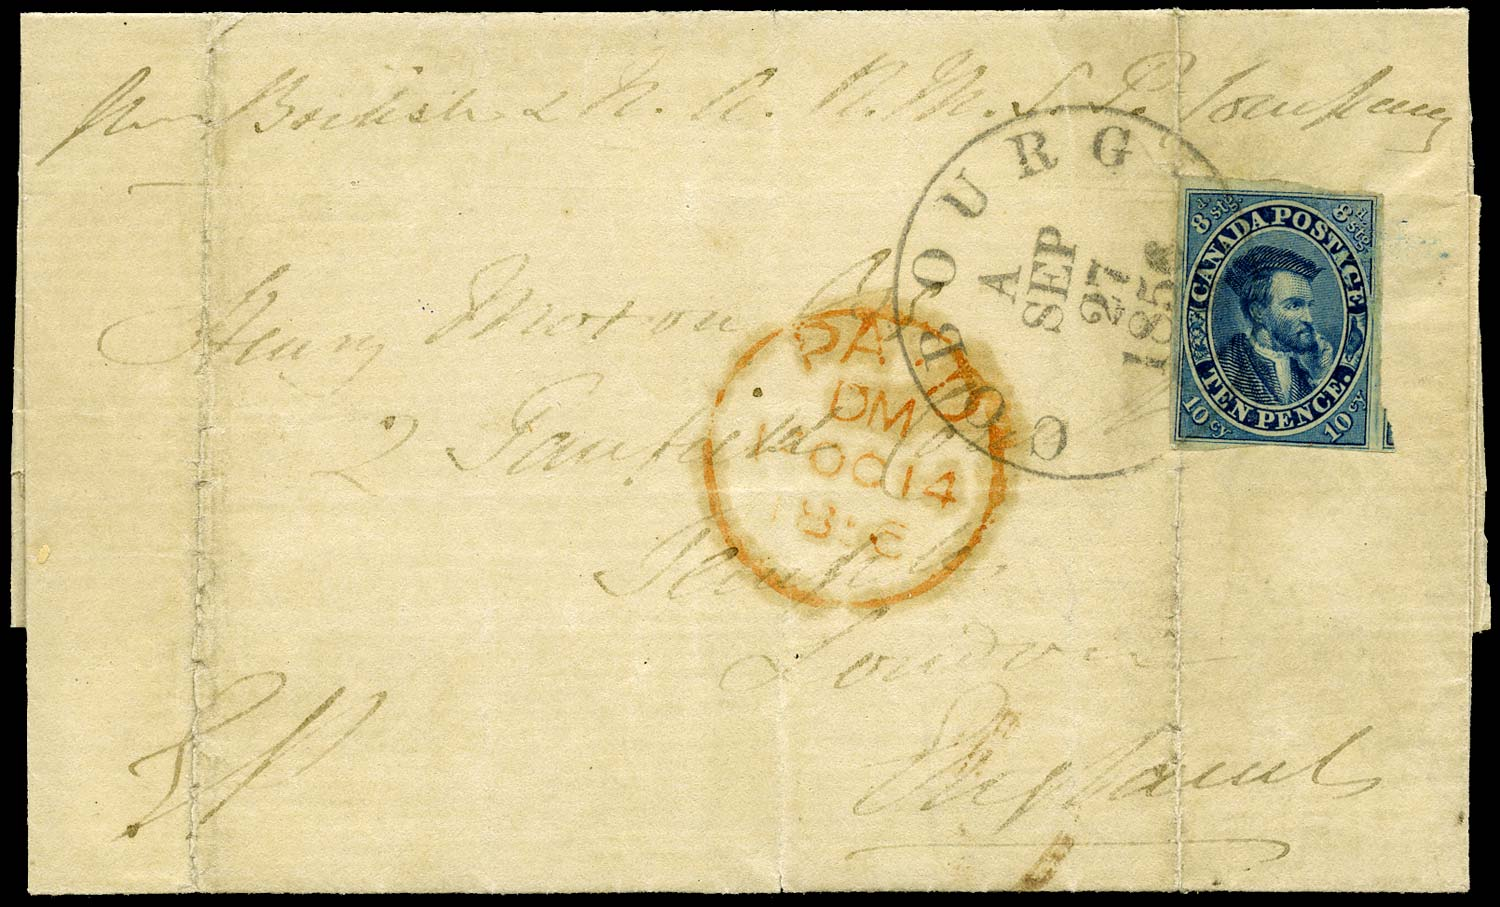 CANADA 1856  SG15 Cover from Cobourg to England with 10d Jacques Cartier